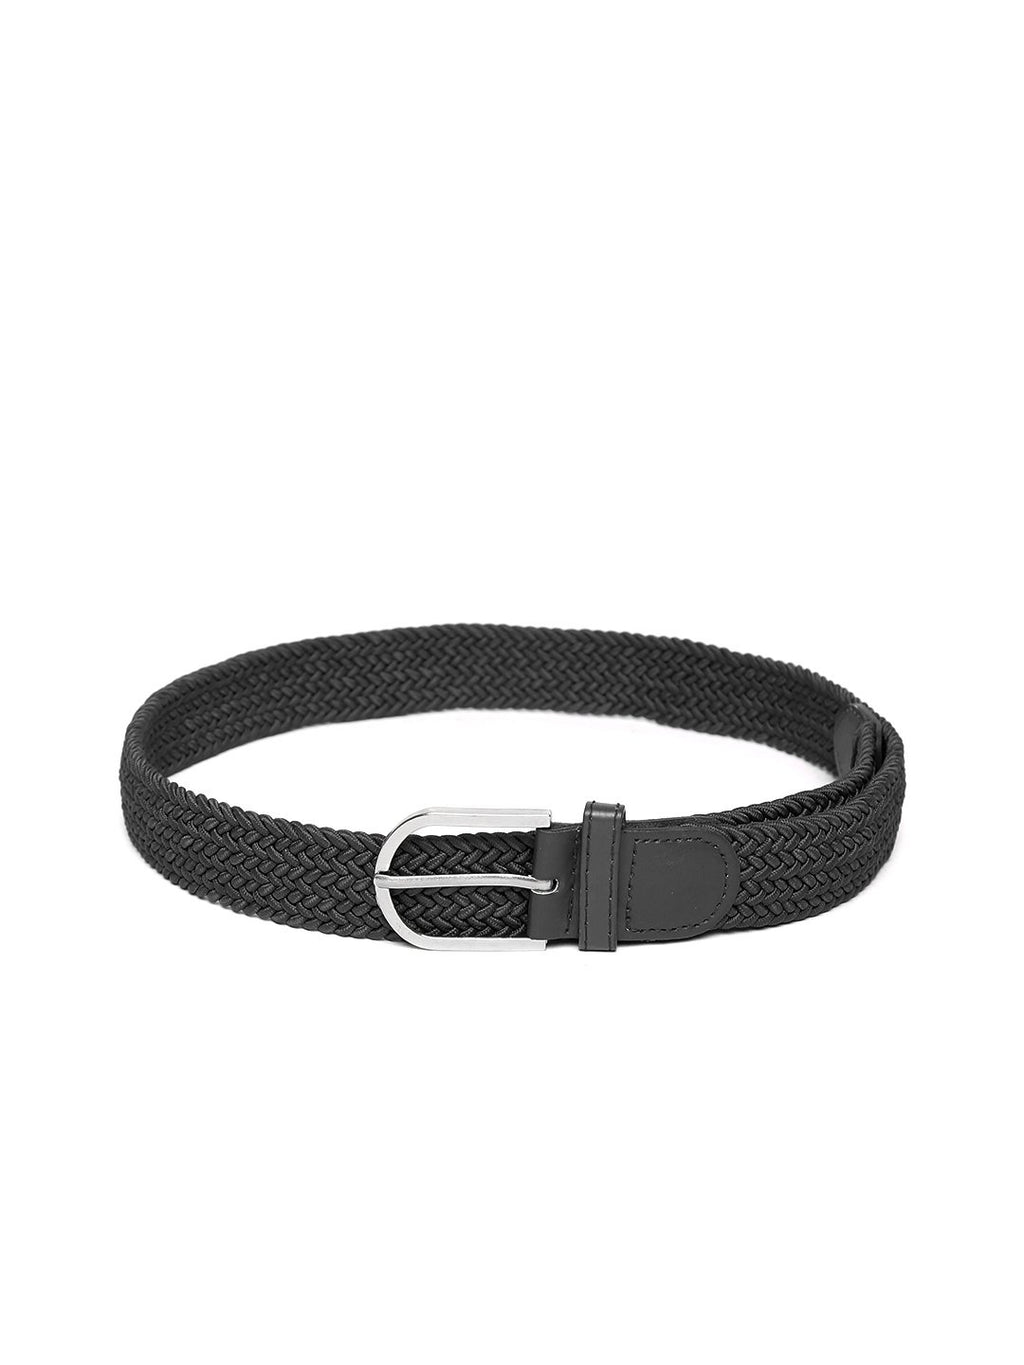 Lazy panda men black webbed belt